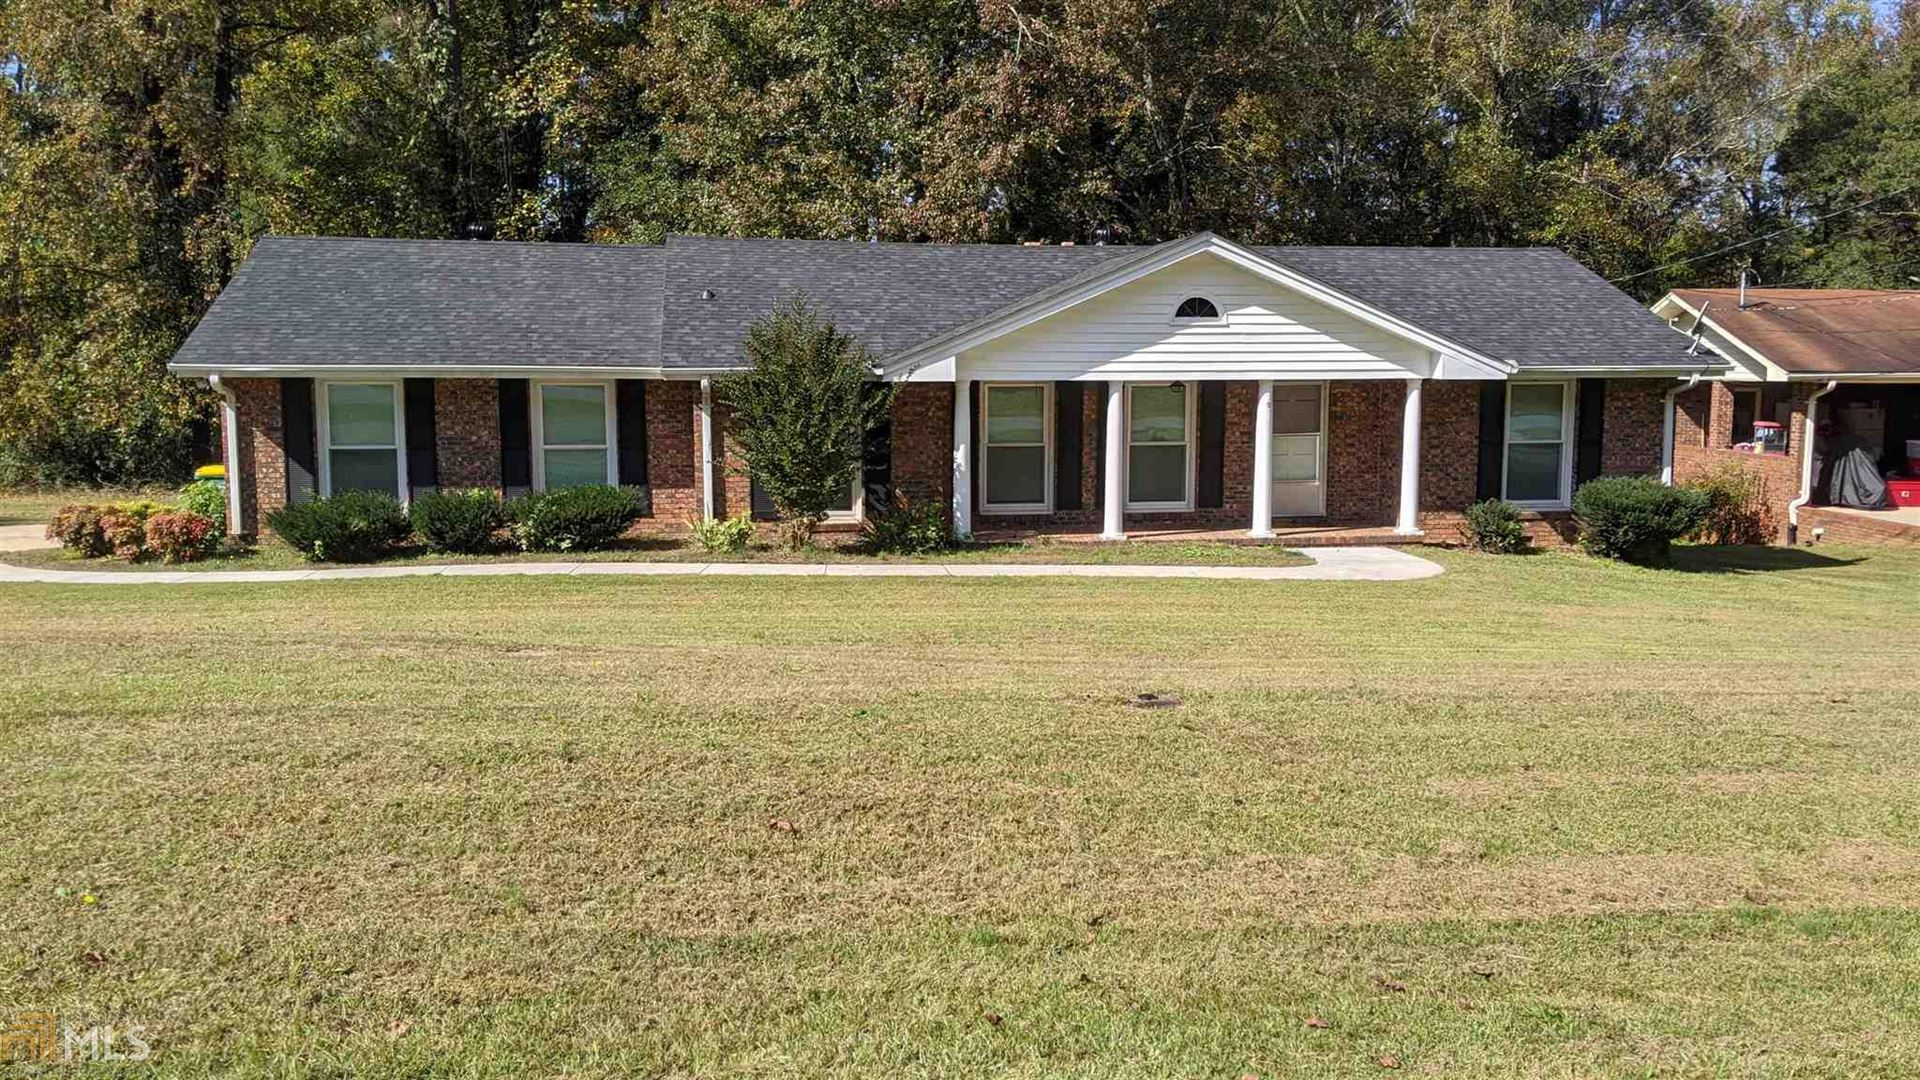 686 Meadowbrook Dr, Winder, GA 30680 - #: 8879934